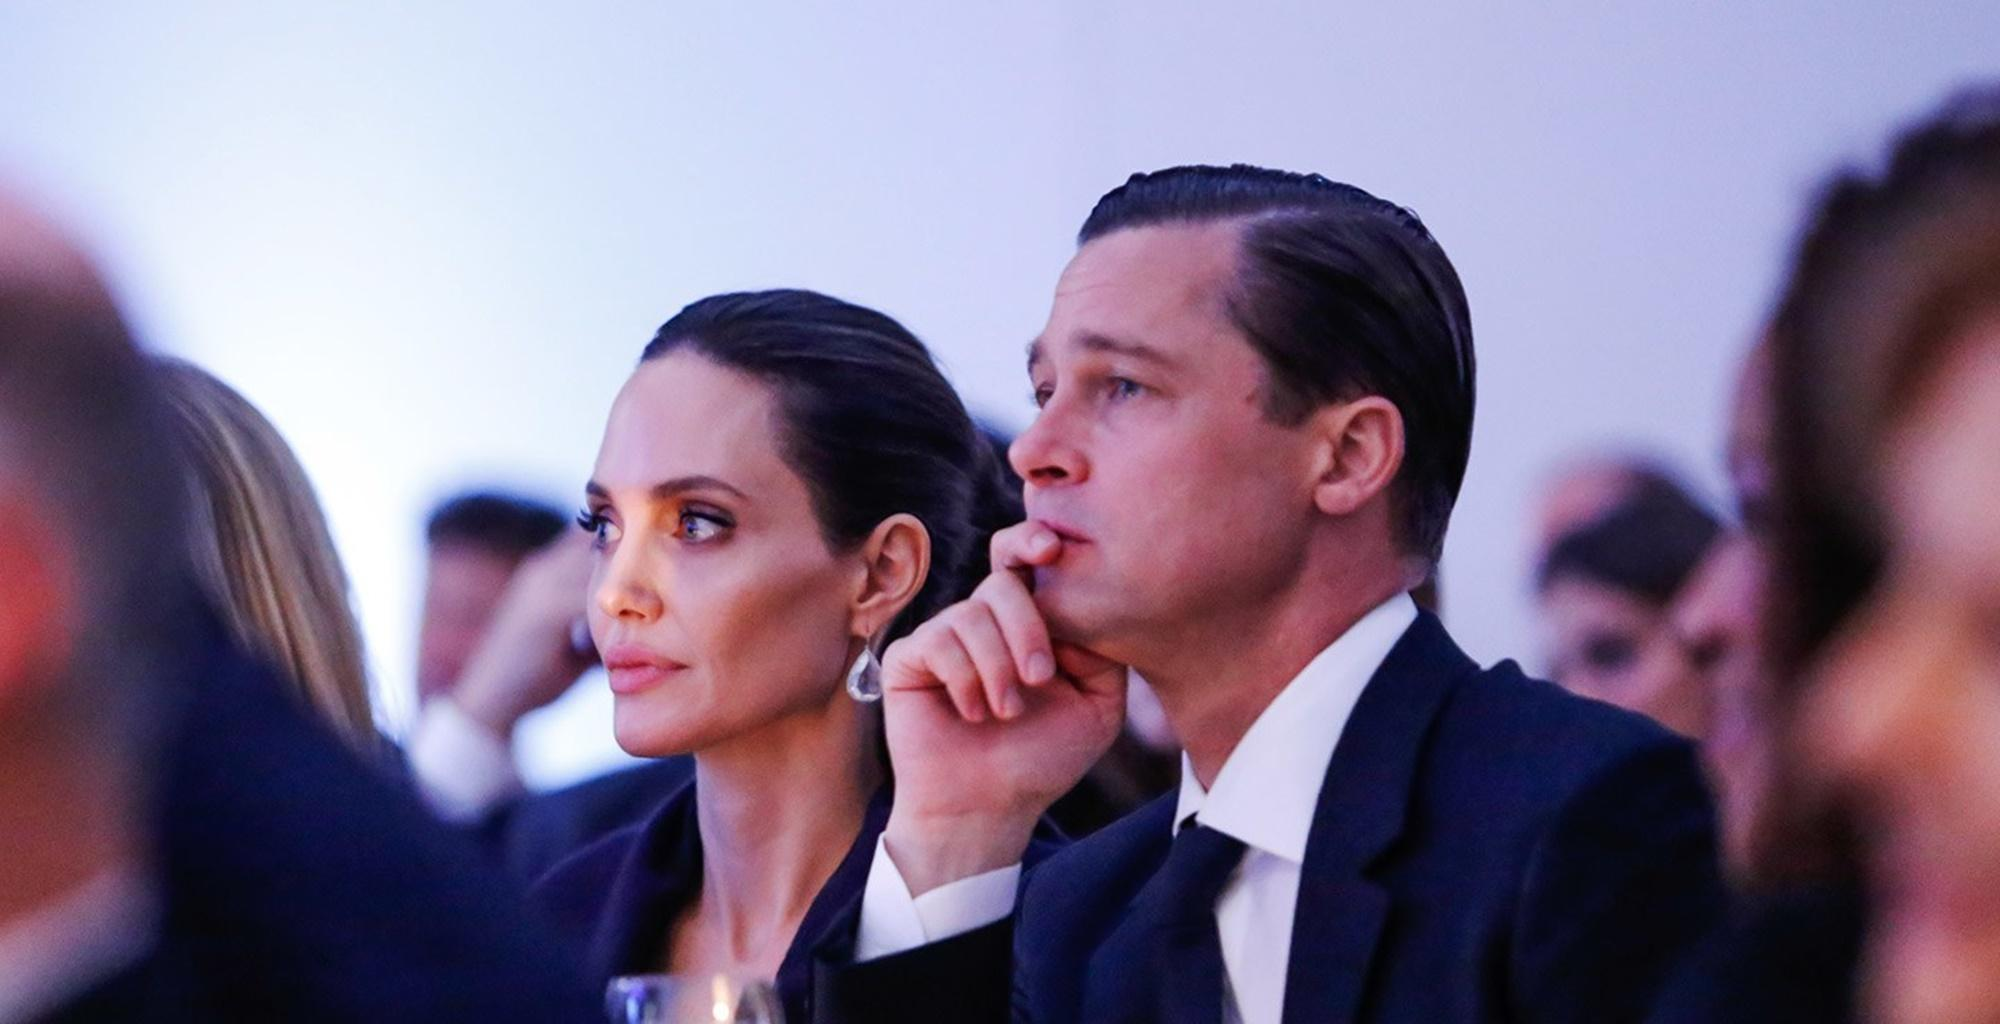 Tired Brad Pitt Wants To Move On From Complicated Angelina Jolie Divorce -- Her Is What Explains Tension In Their Recent Pictures